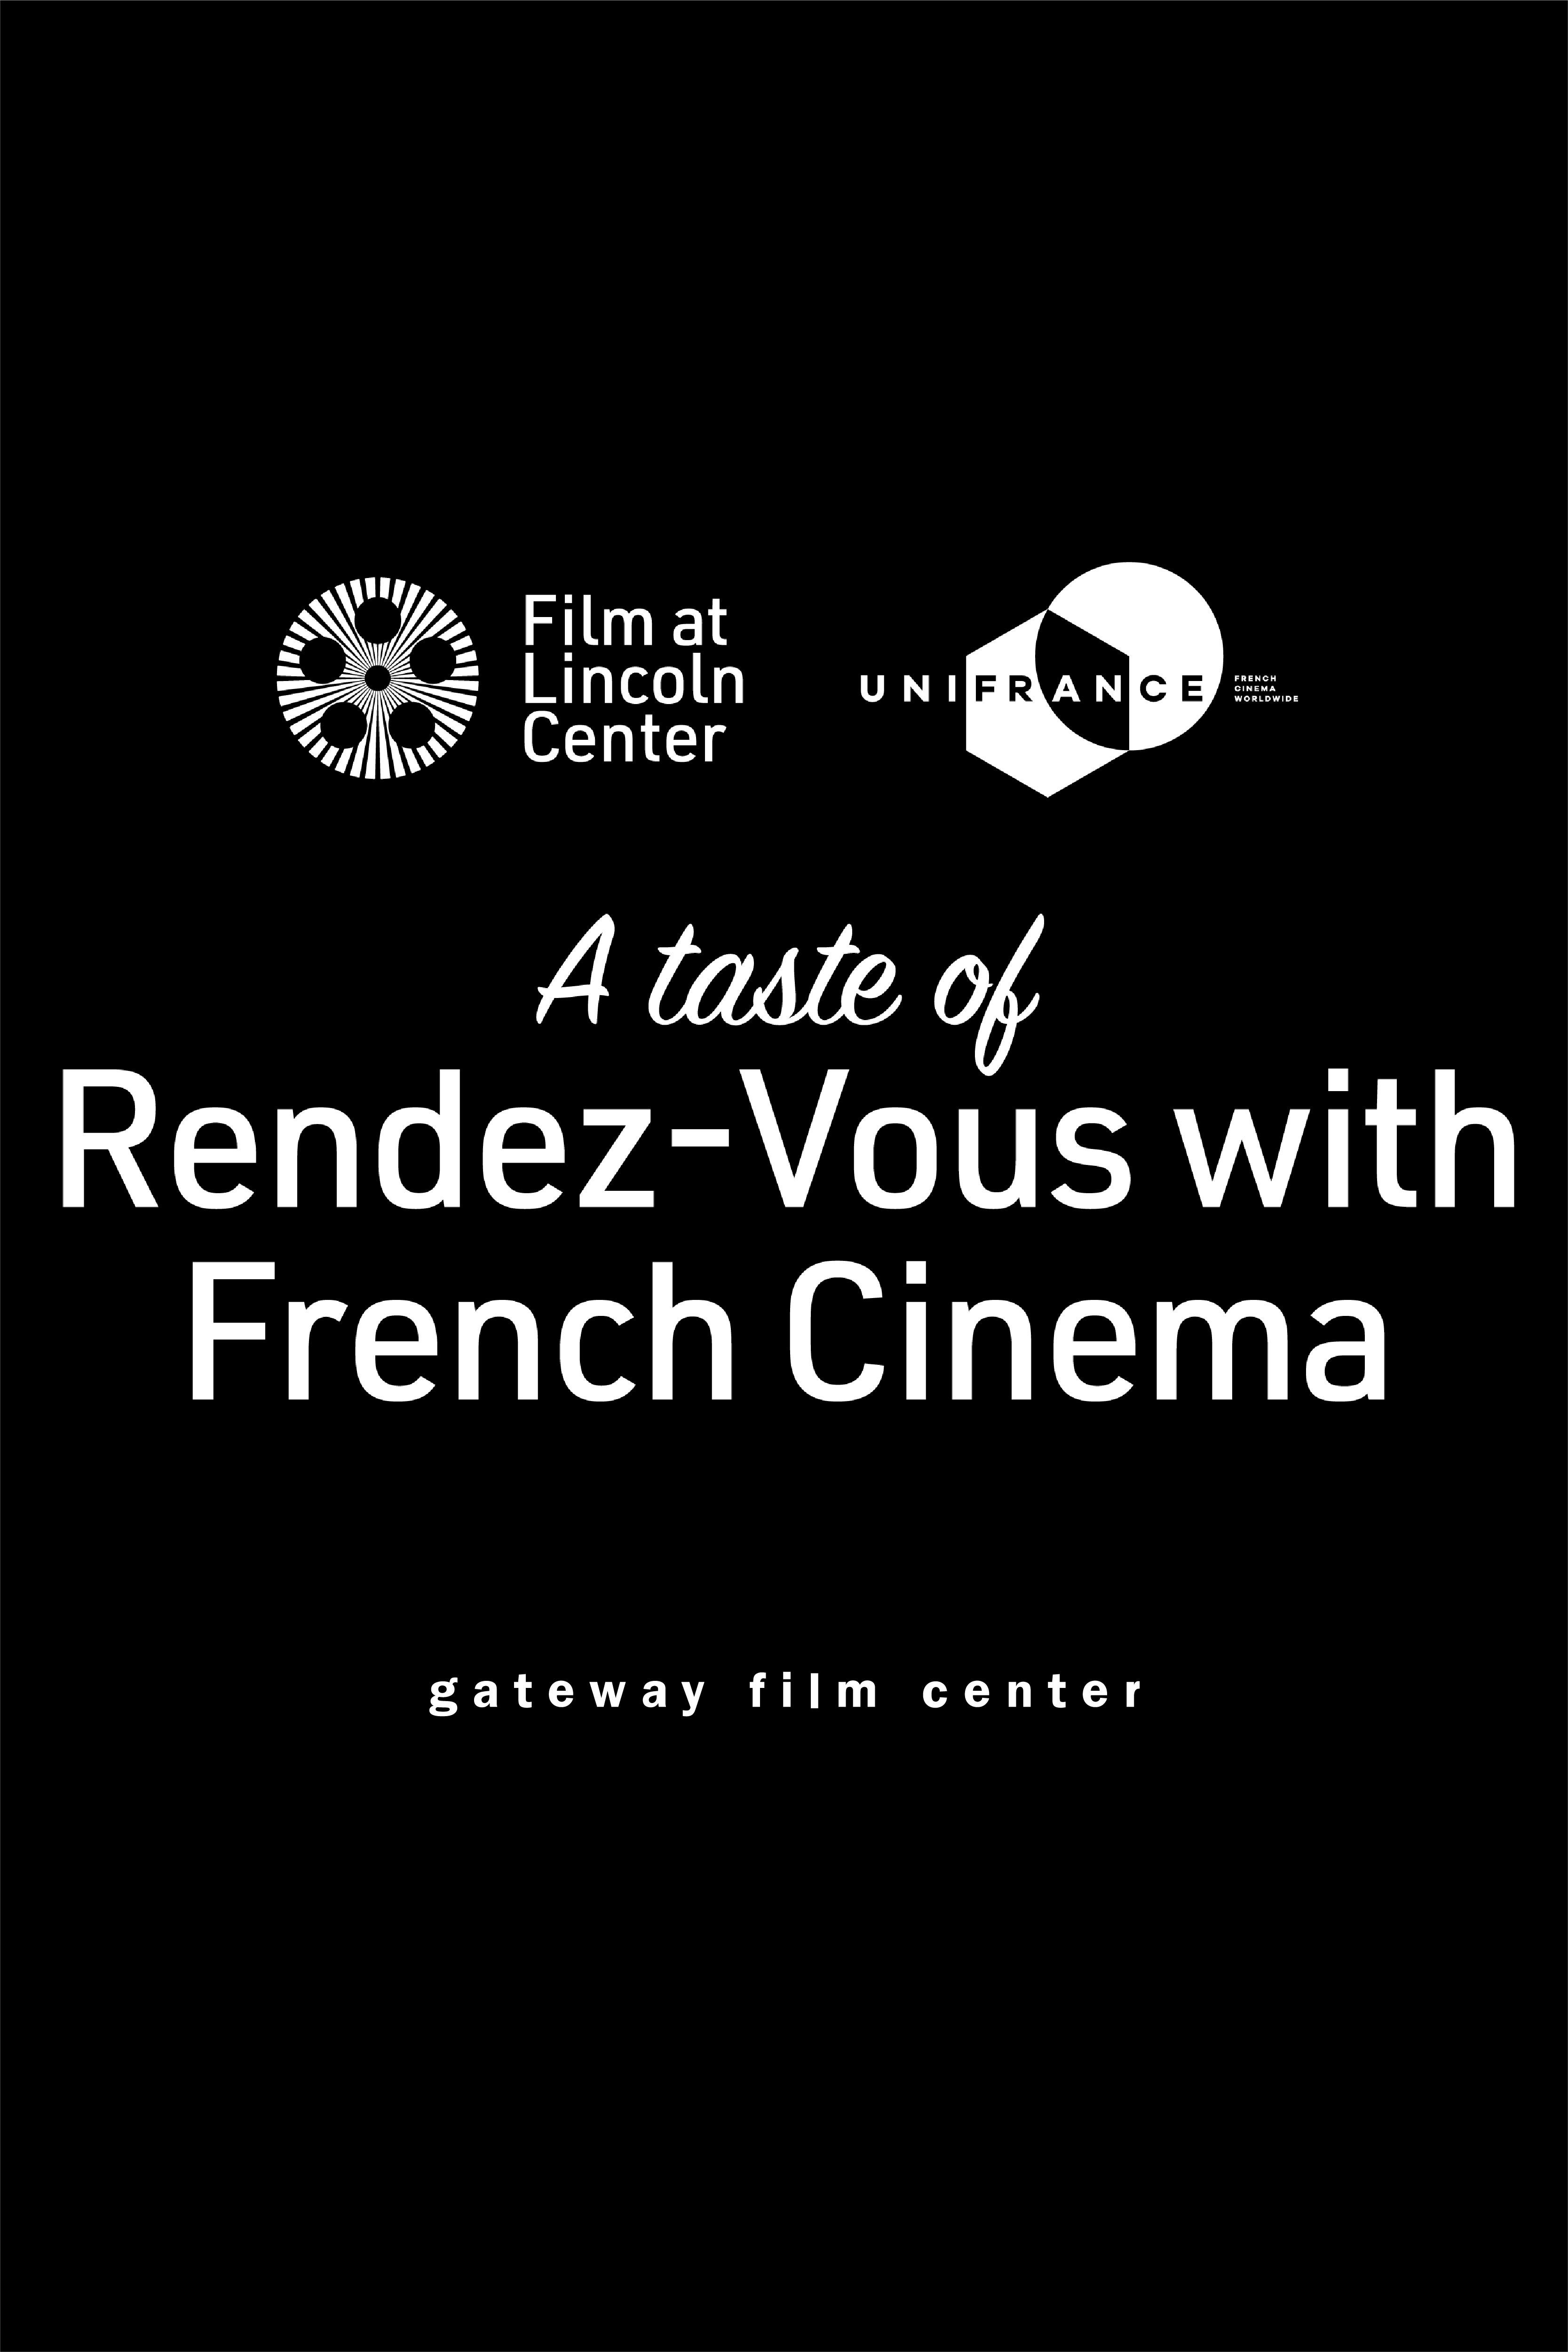 Poster for The 26th Edition of Rendez-Vous with French Cinema